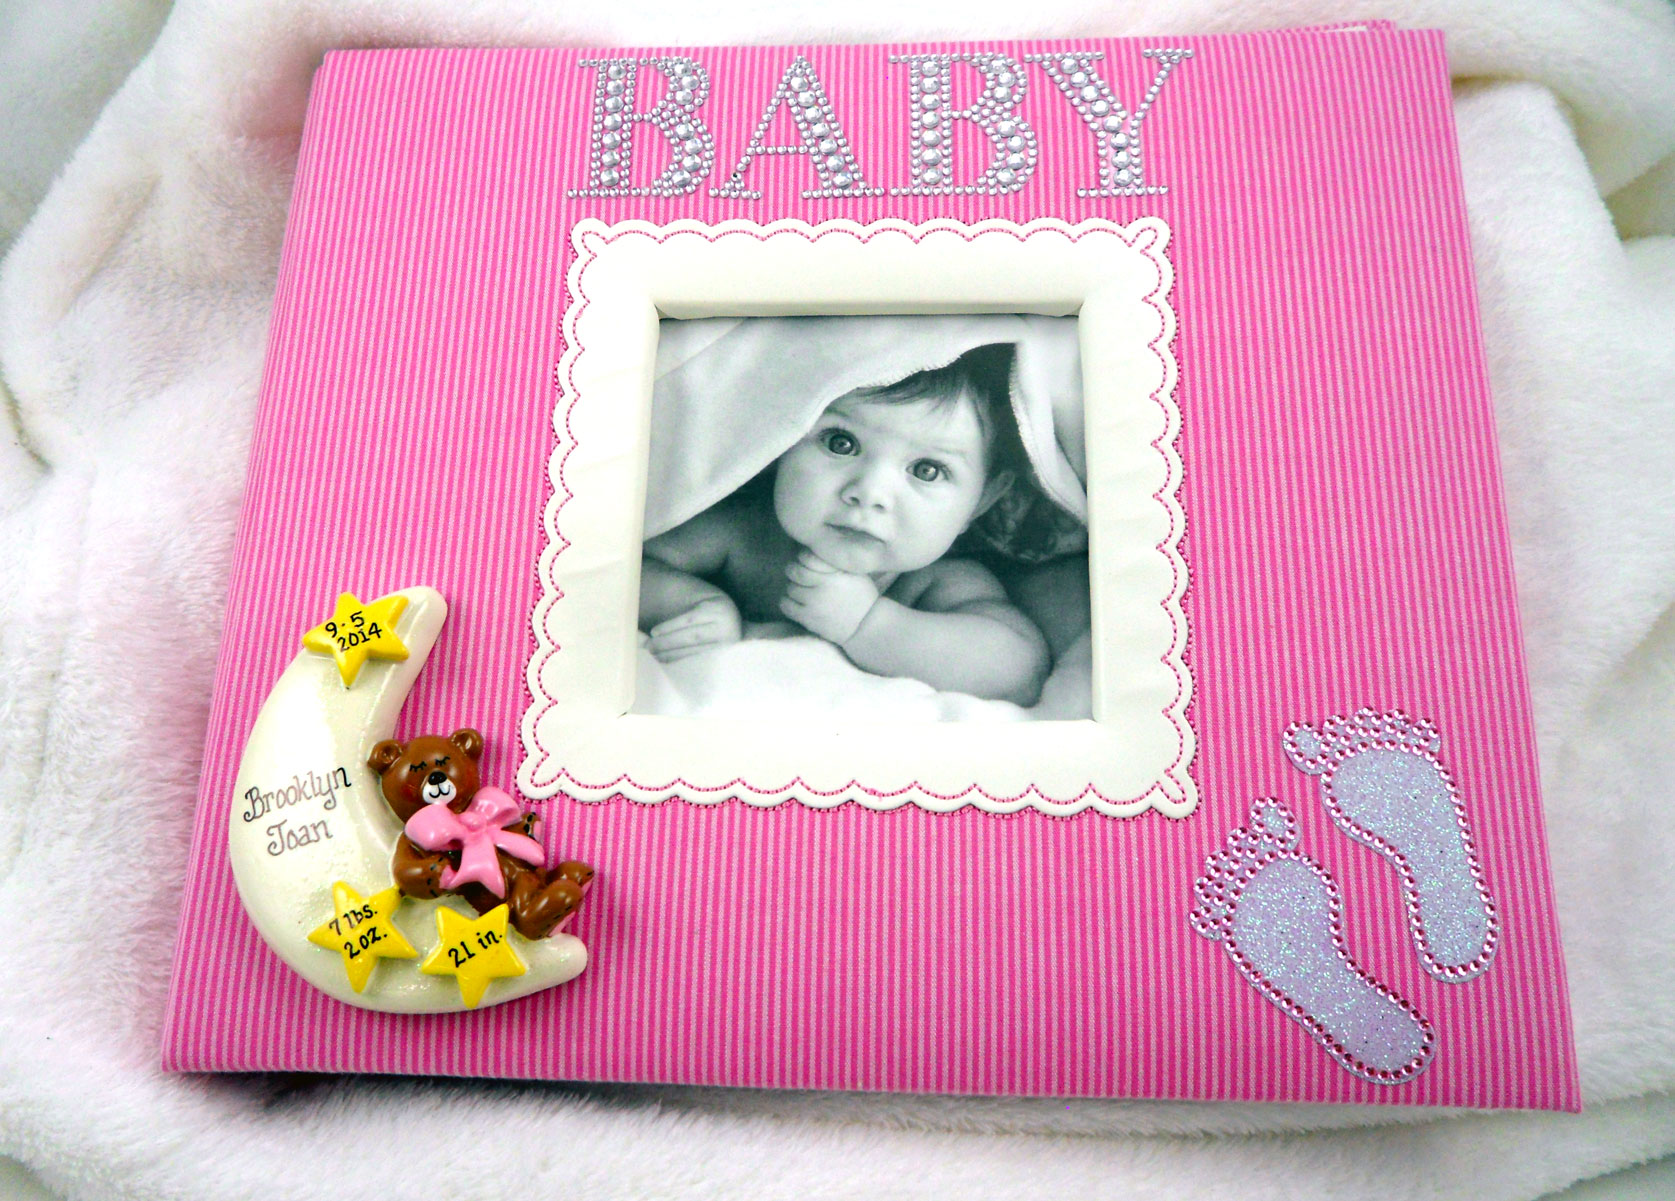 make memories last with personalized baby gifts photo albums